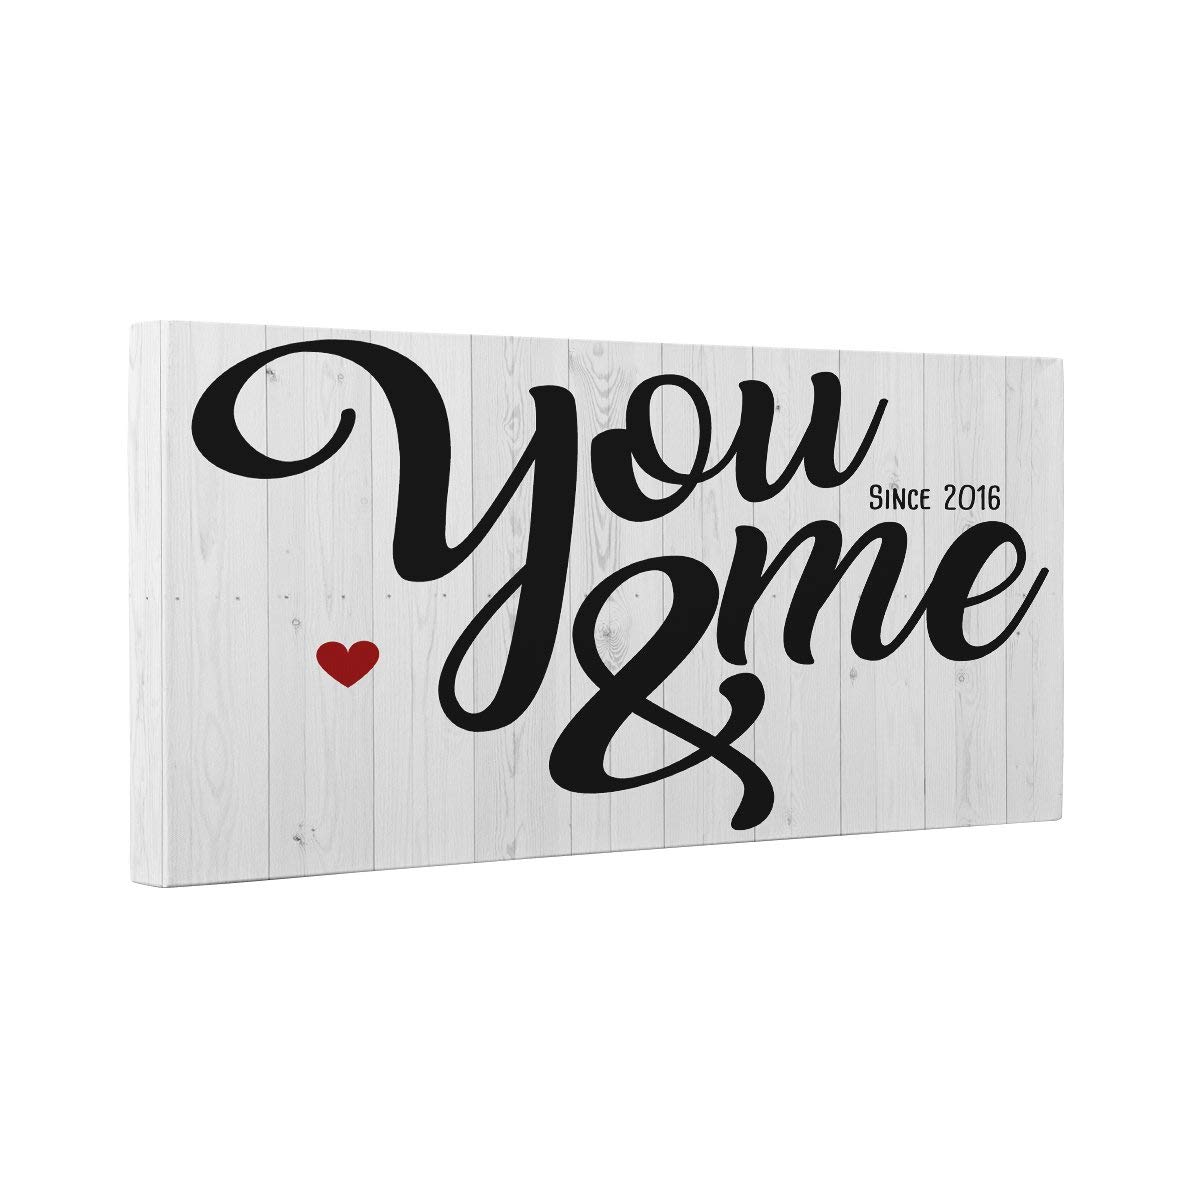 You Wholesale Brand new and Me Since Wall Year Canvas Art